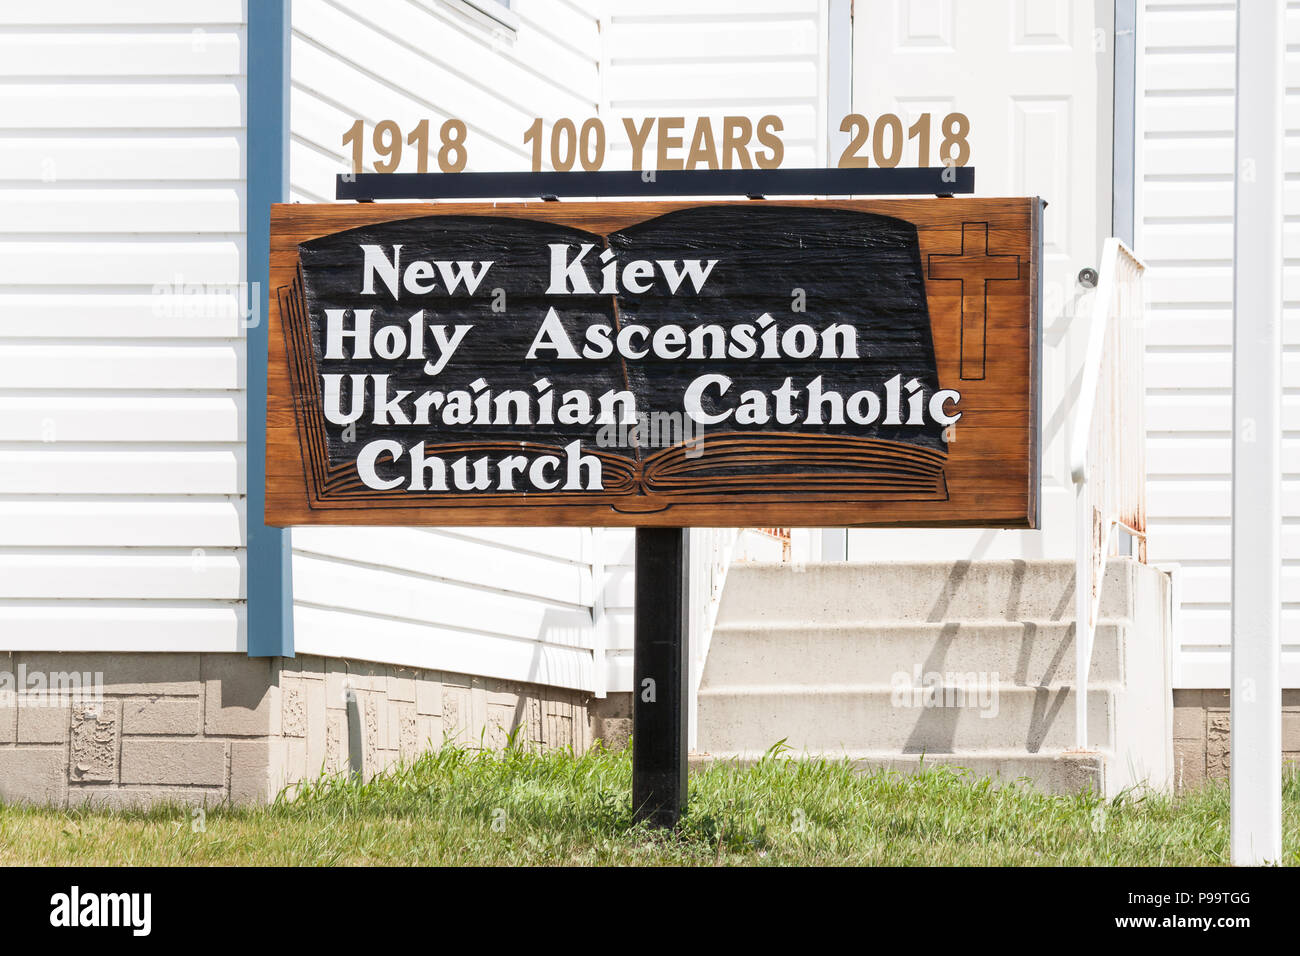 100 year old Ukrainian Catholic Parish, 1918 church - Stock Image